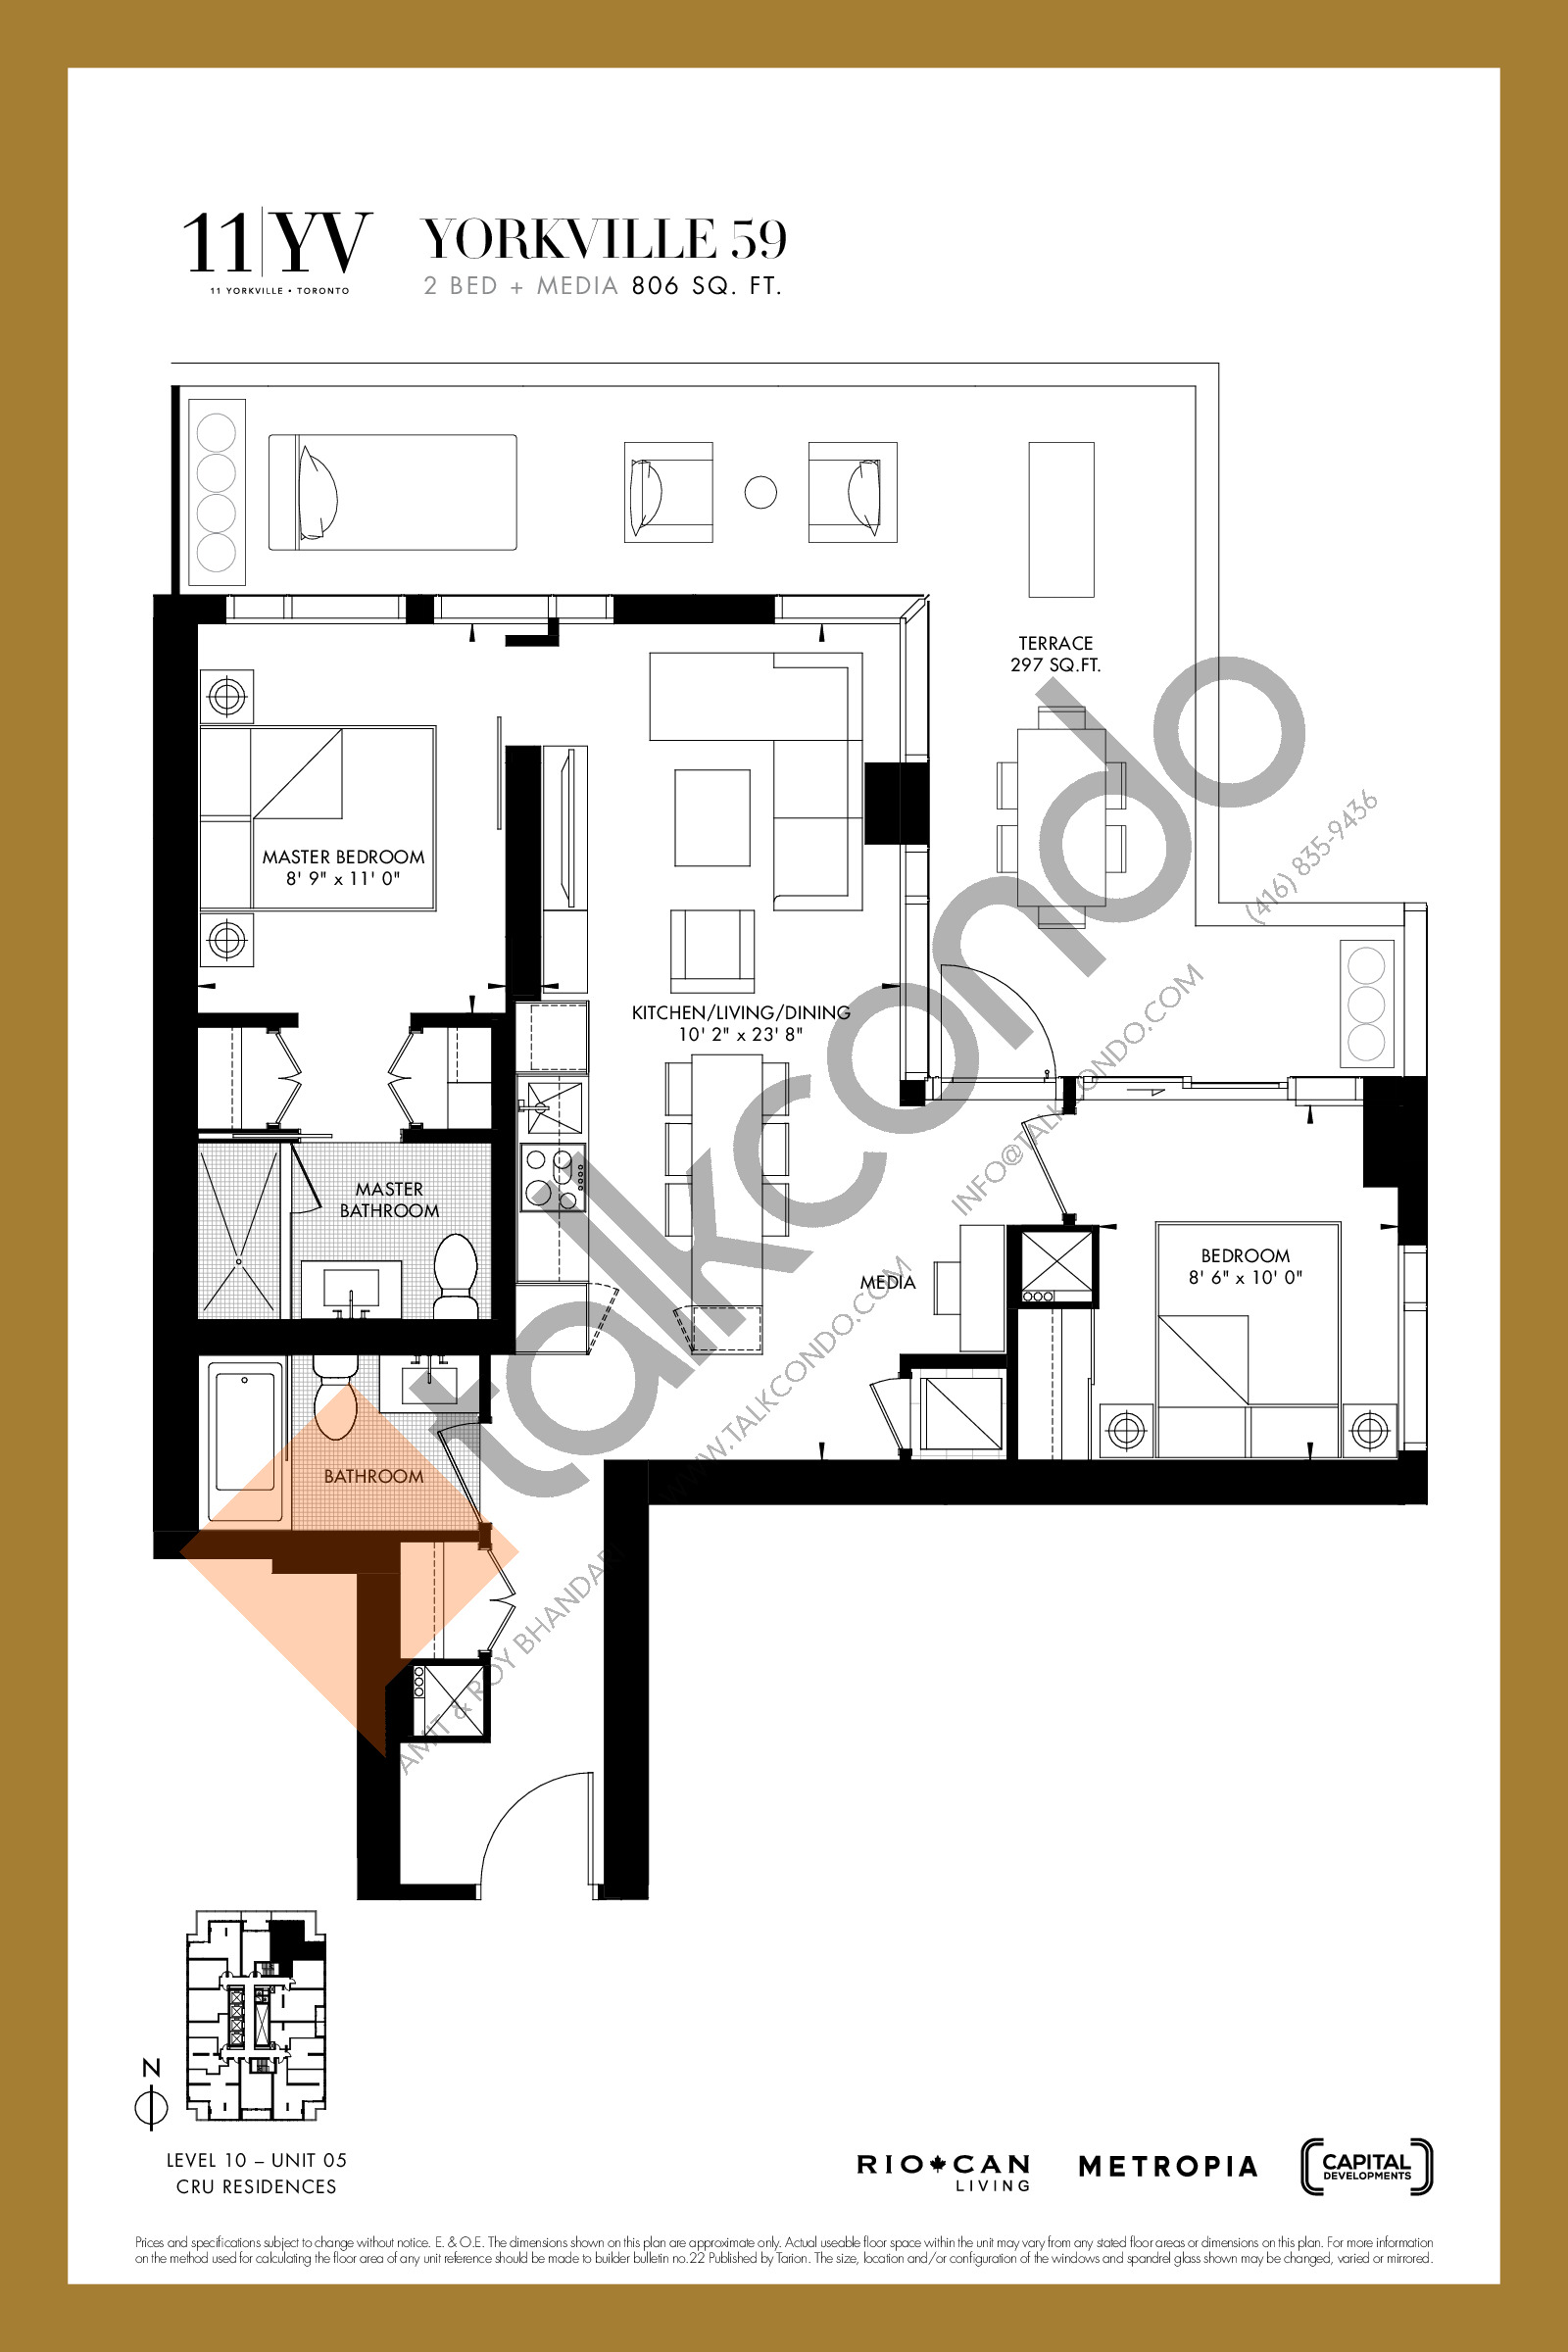 Yorkville 59 Floor Plan at 11YV Condos - 806 sq.ft